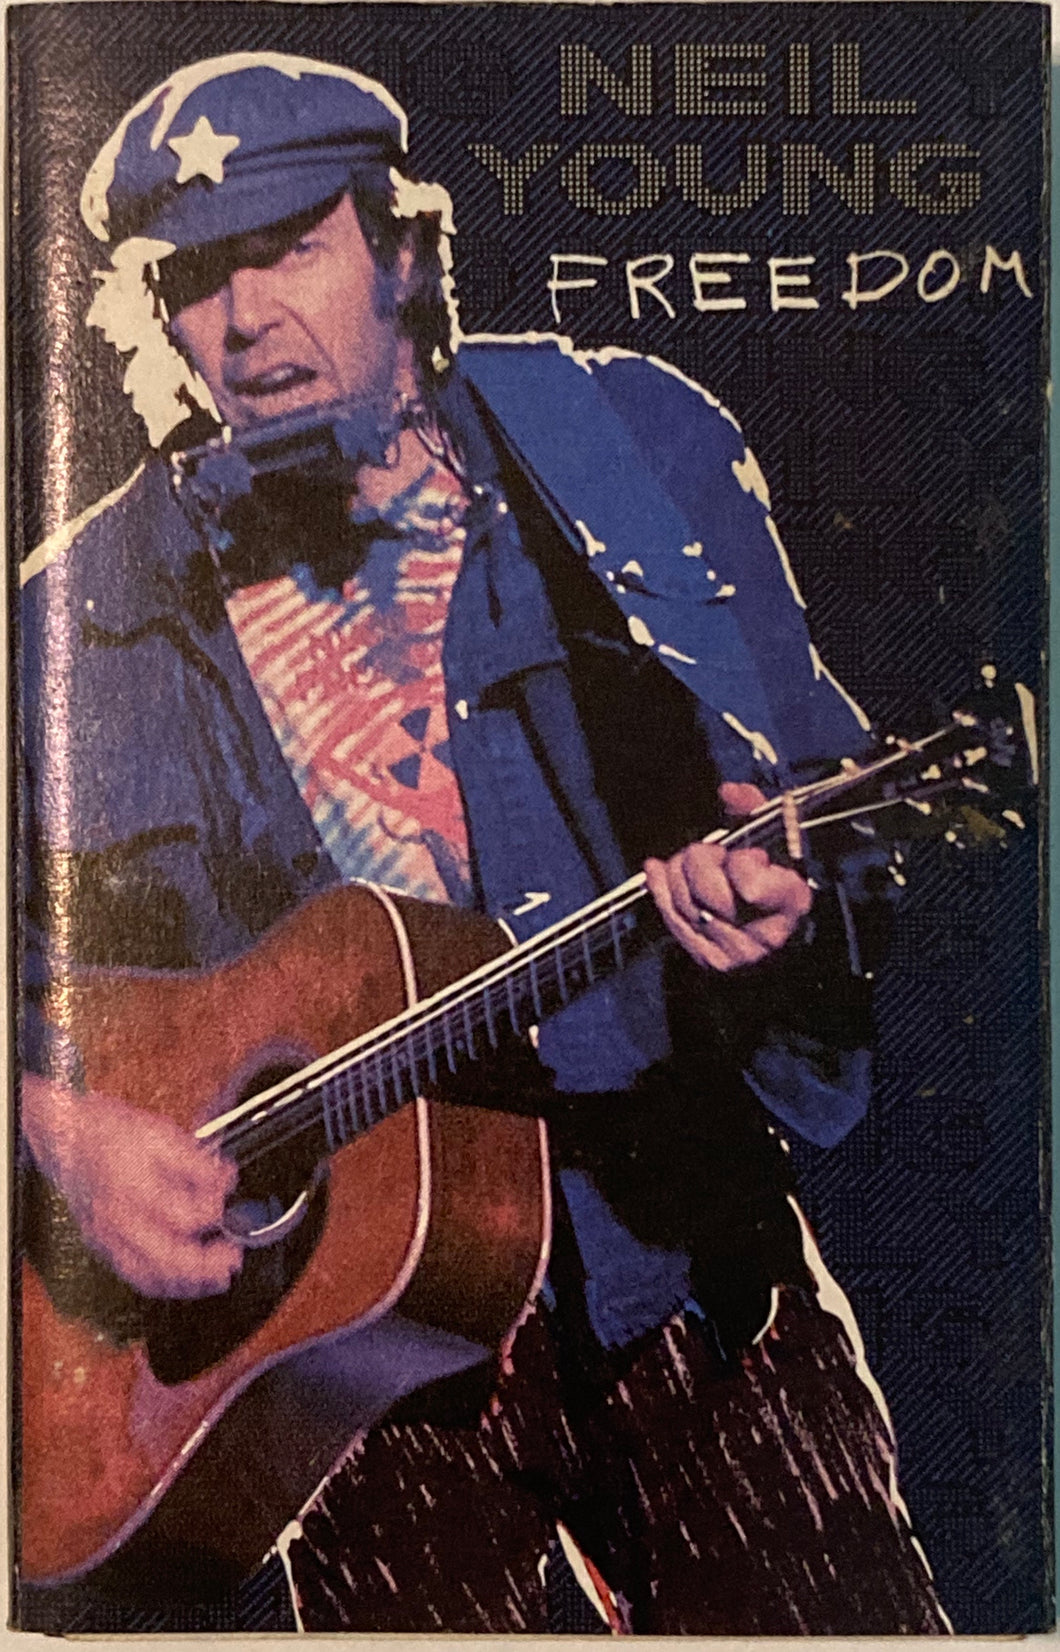 Neil Young - Freedom Cassette VG